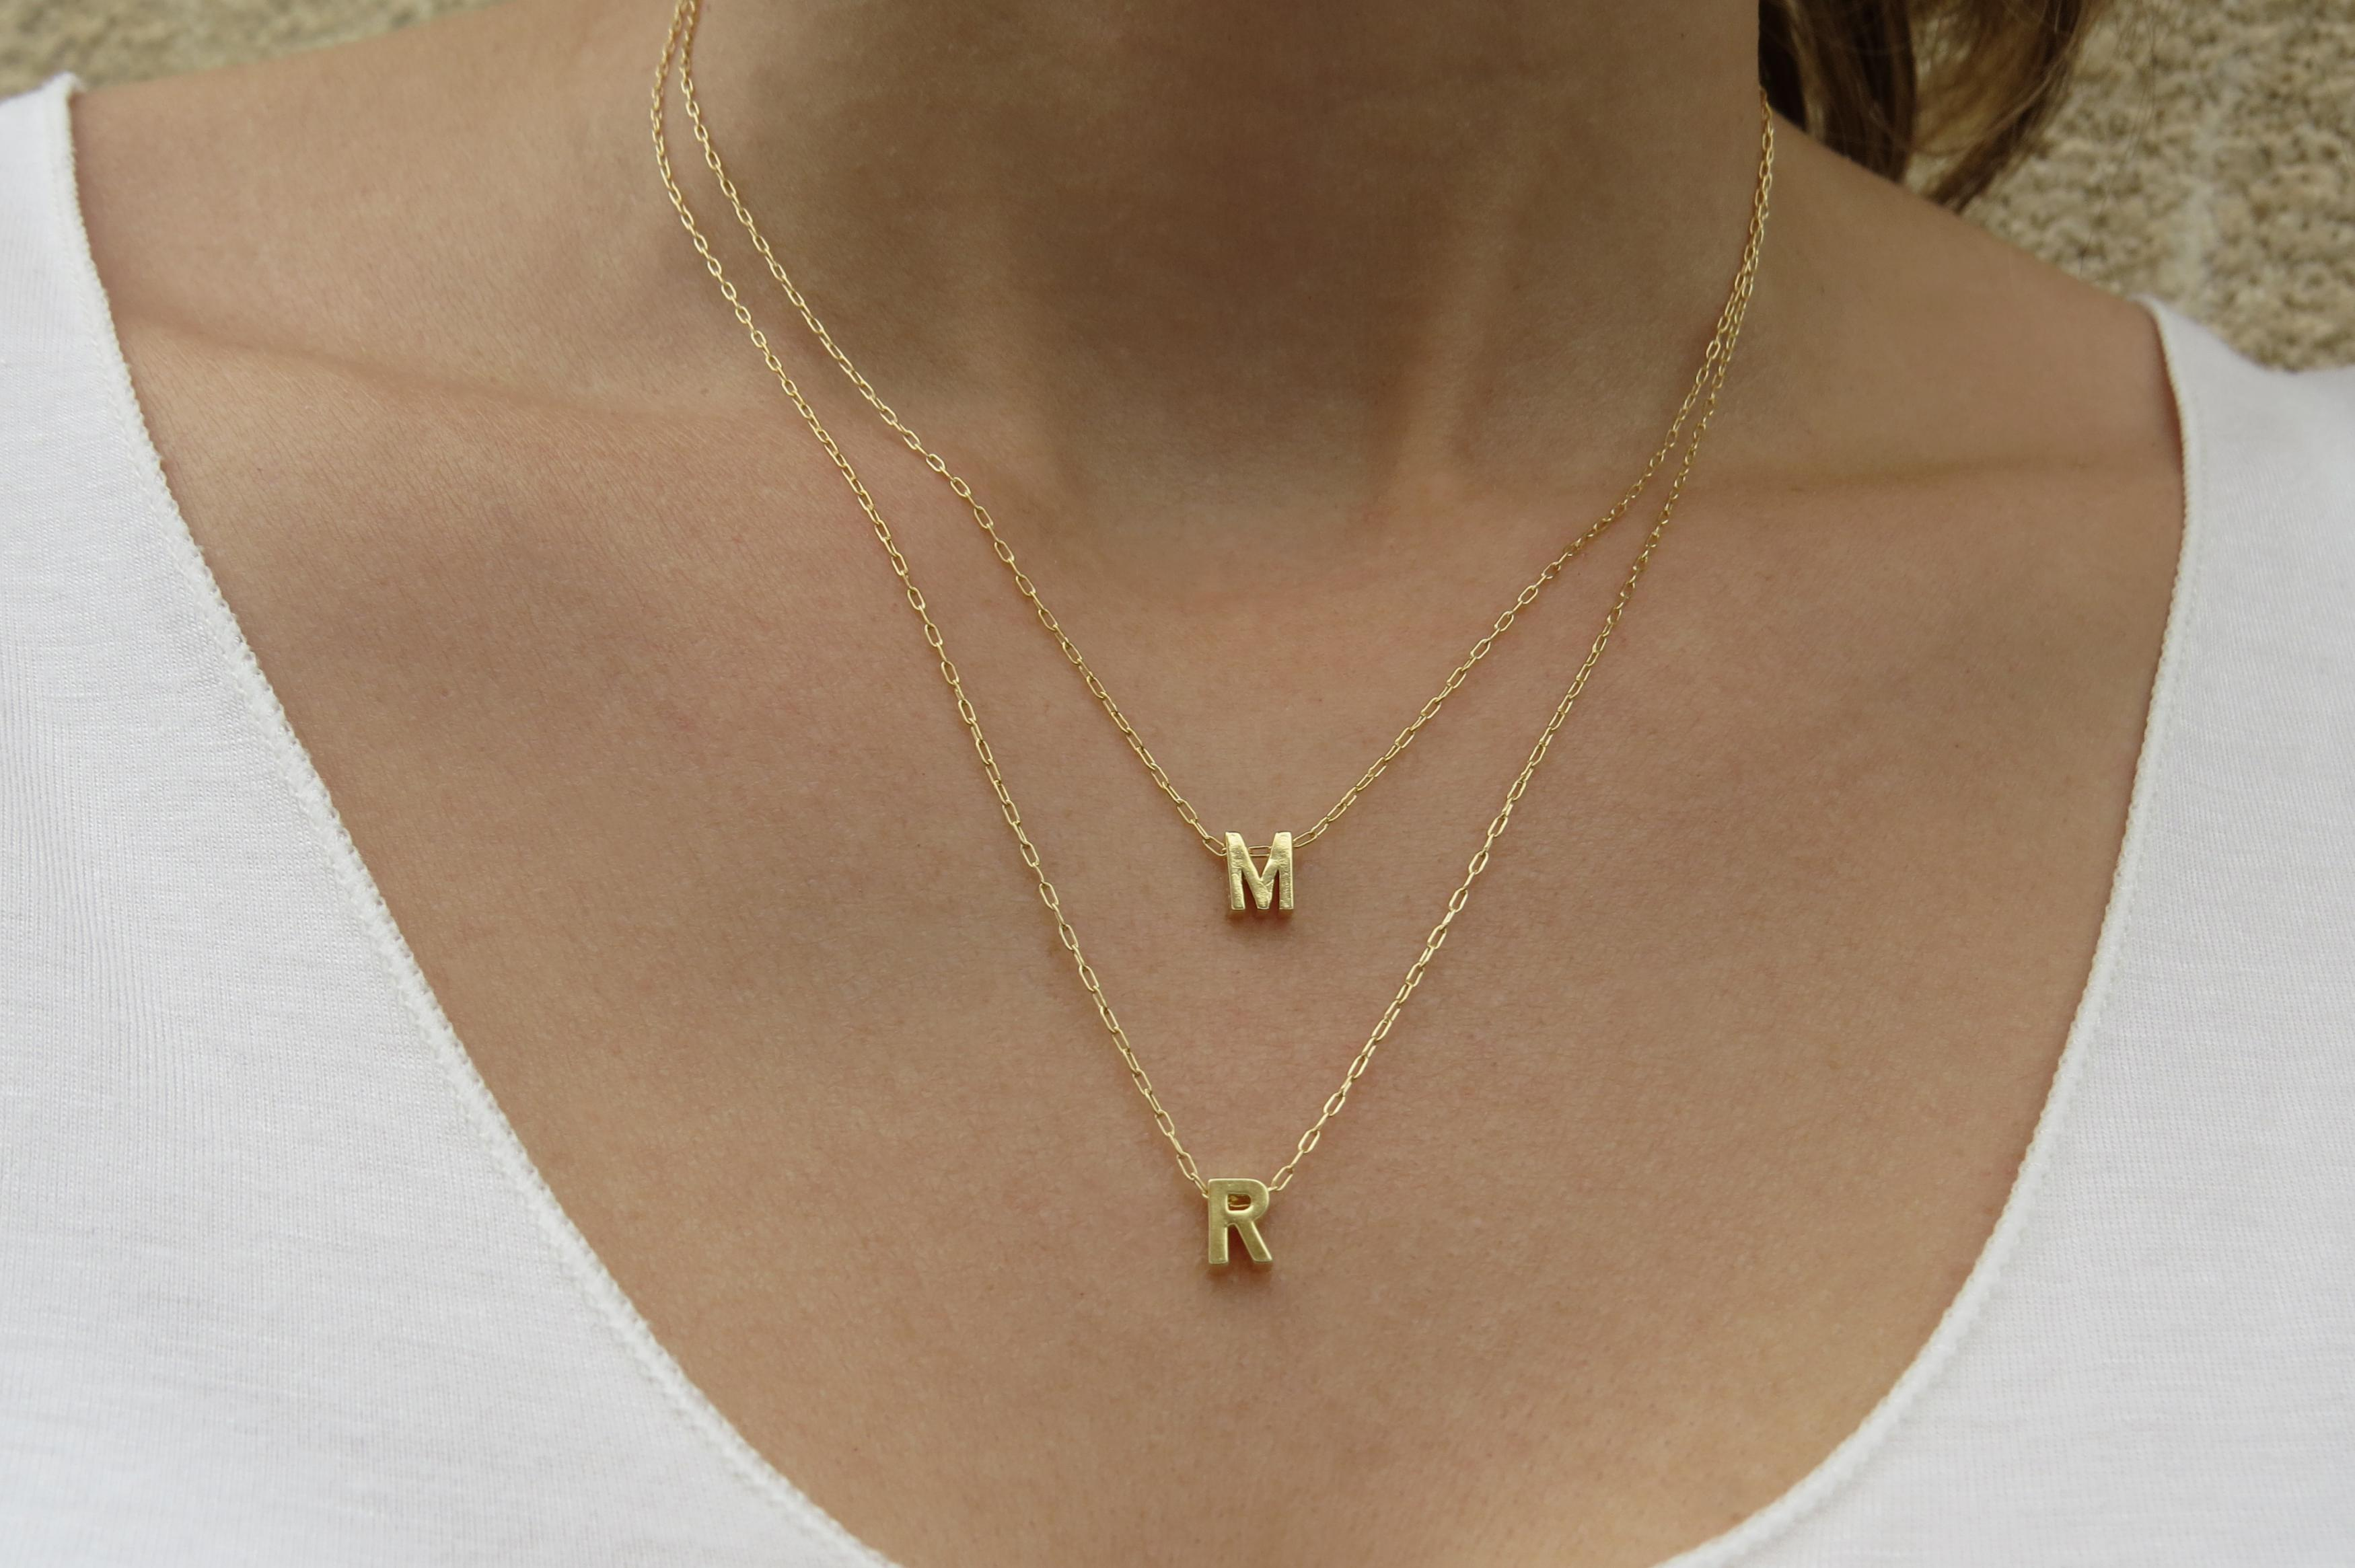 New gold letter pendant necklace jewellrys website goldfilled initial necklace gold letter necklace gold necklace monogram pendant necklace mozeypictures Image collections